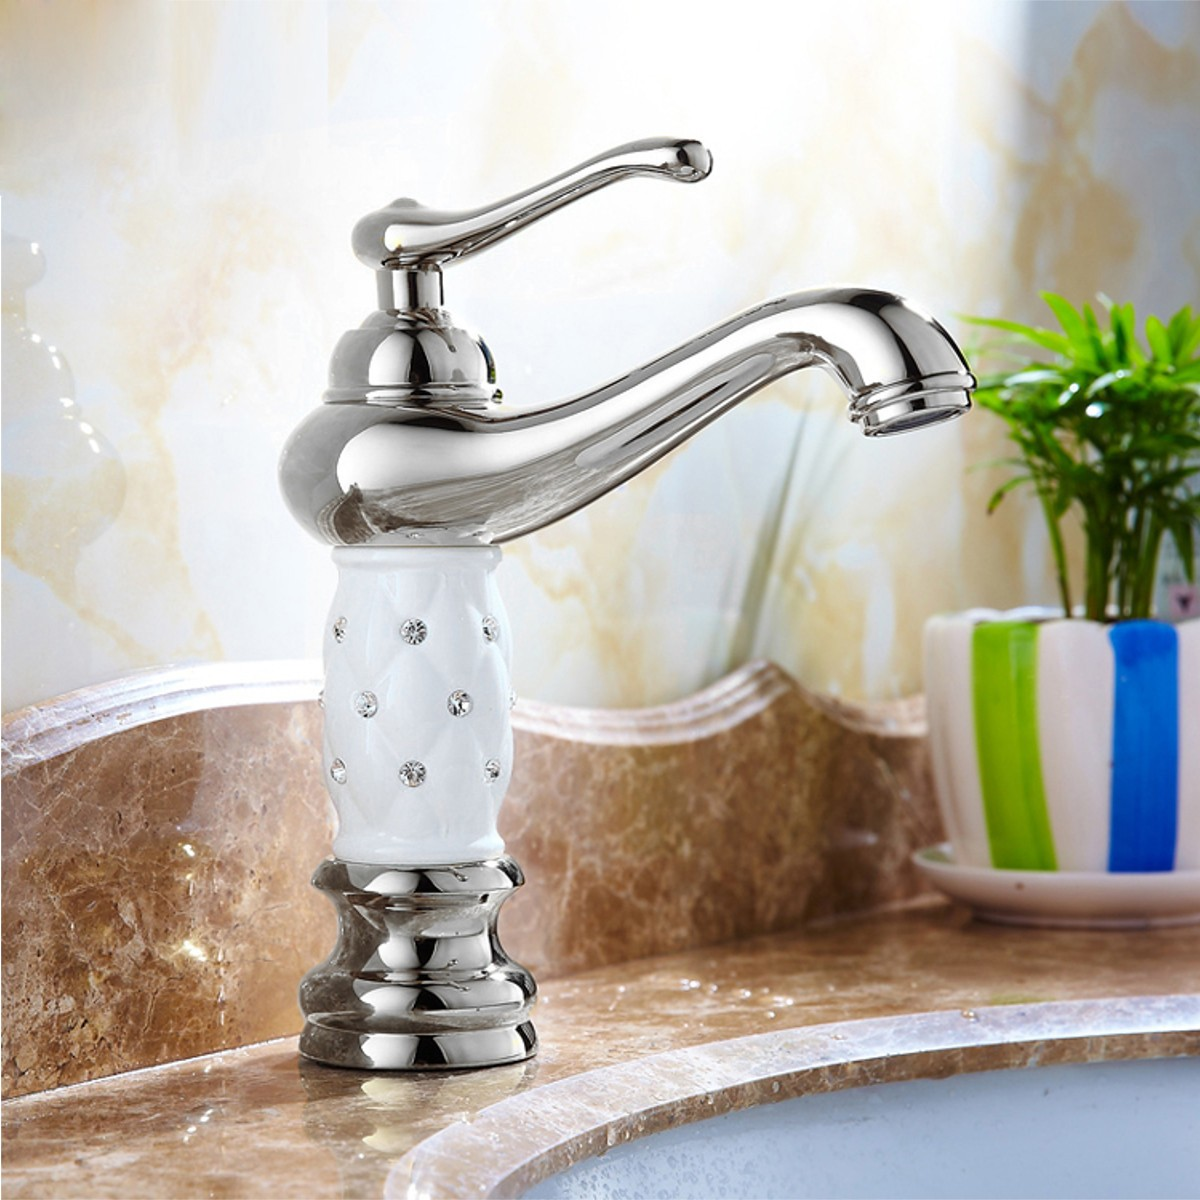 Xueqin Laundry Single Handle Basin Faucet Chrome Polished Home Bathroom Hot and Cold Water Sink Mix Tap With 50cm HoseXueqin Laundry Single Handle Basin Faucet Chrome Polished Home Bathroom Hot and Cold Water Sink Mix Tap With 50cm Hose